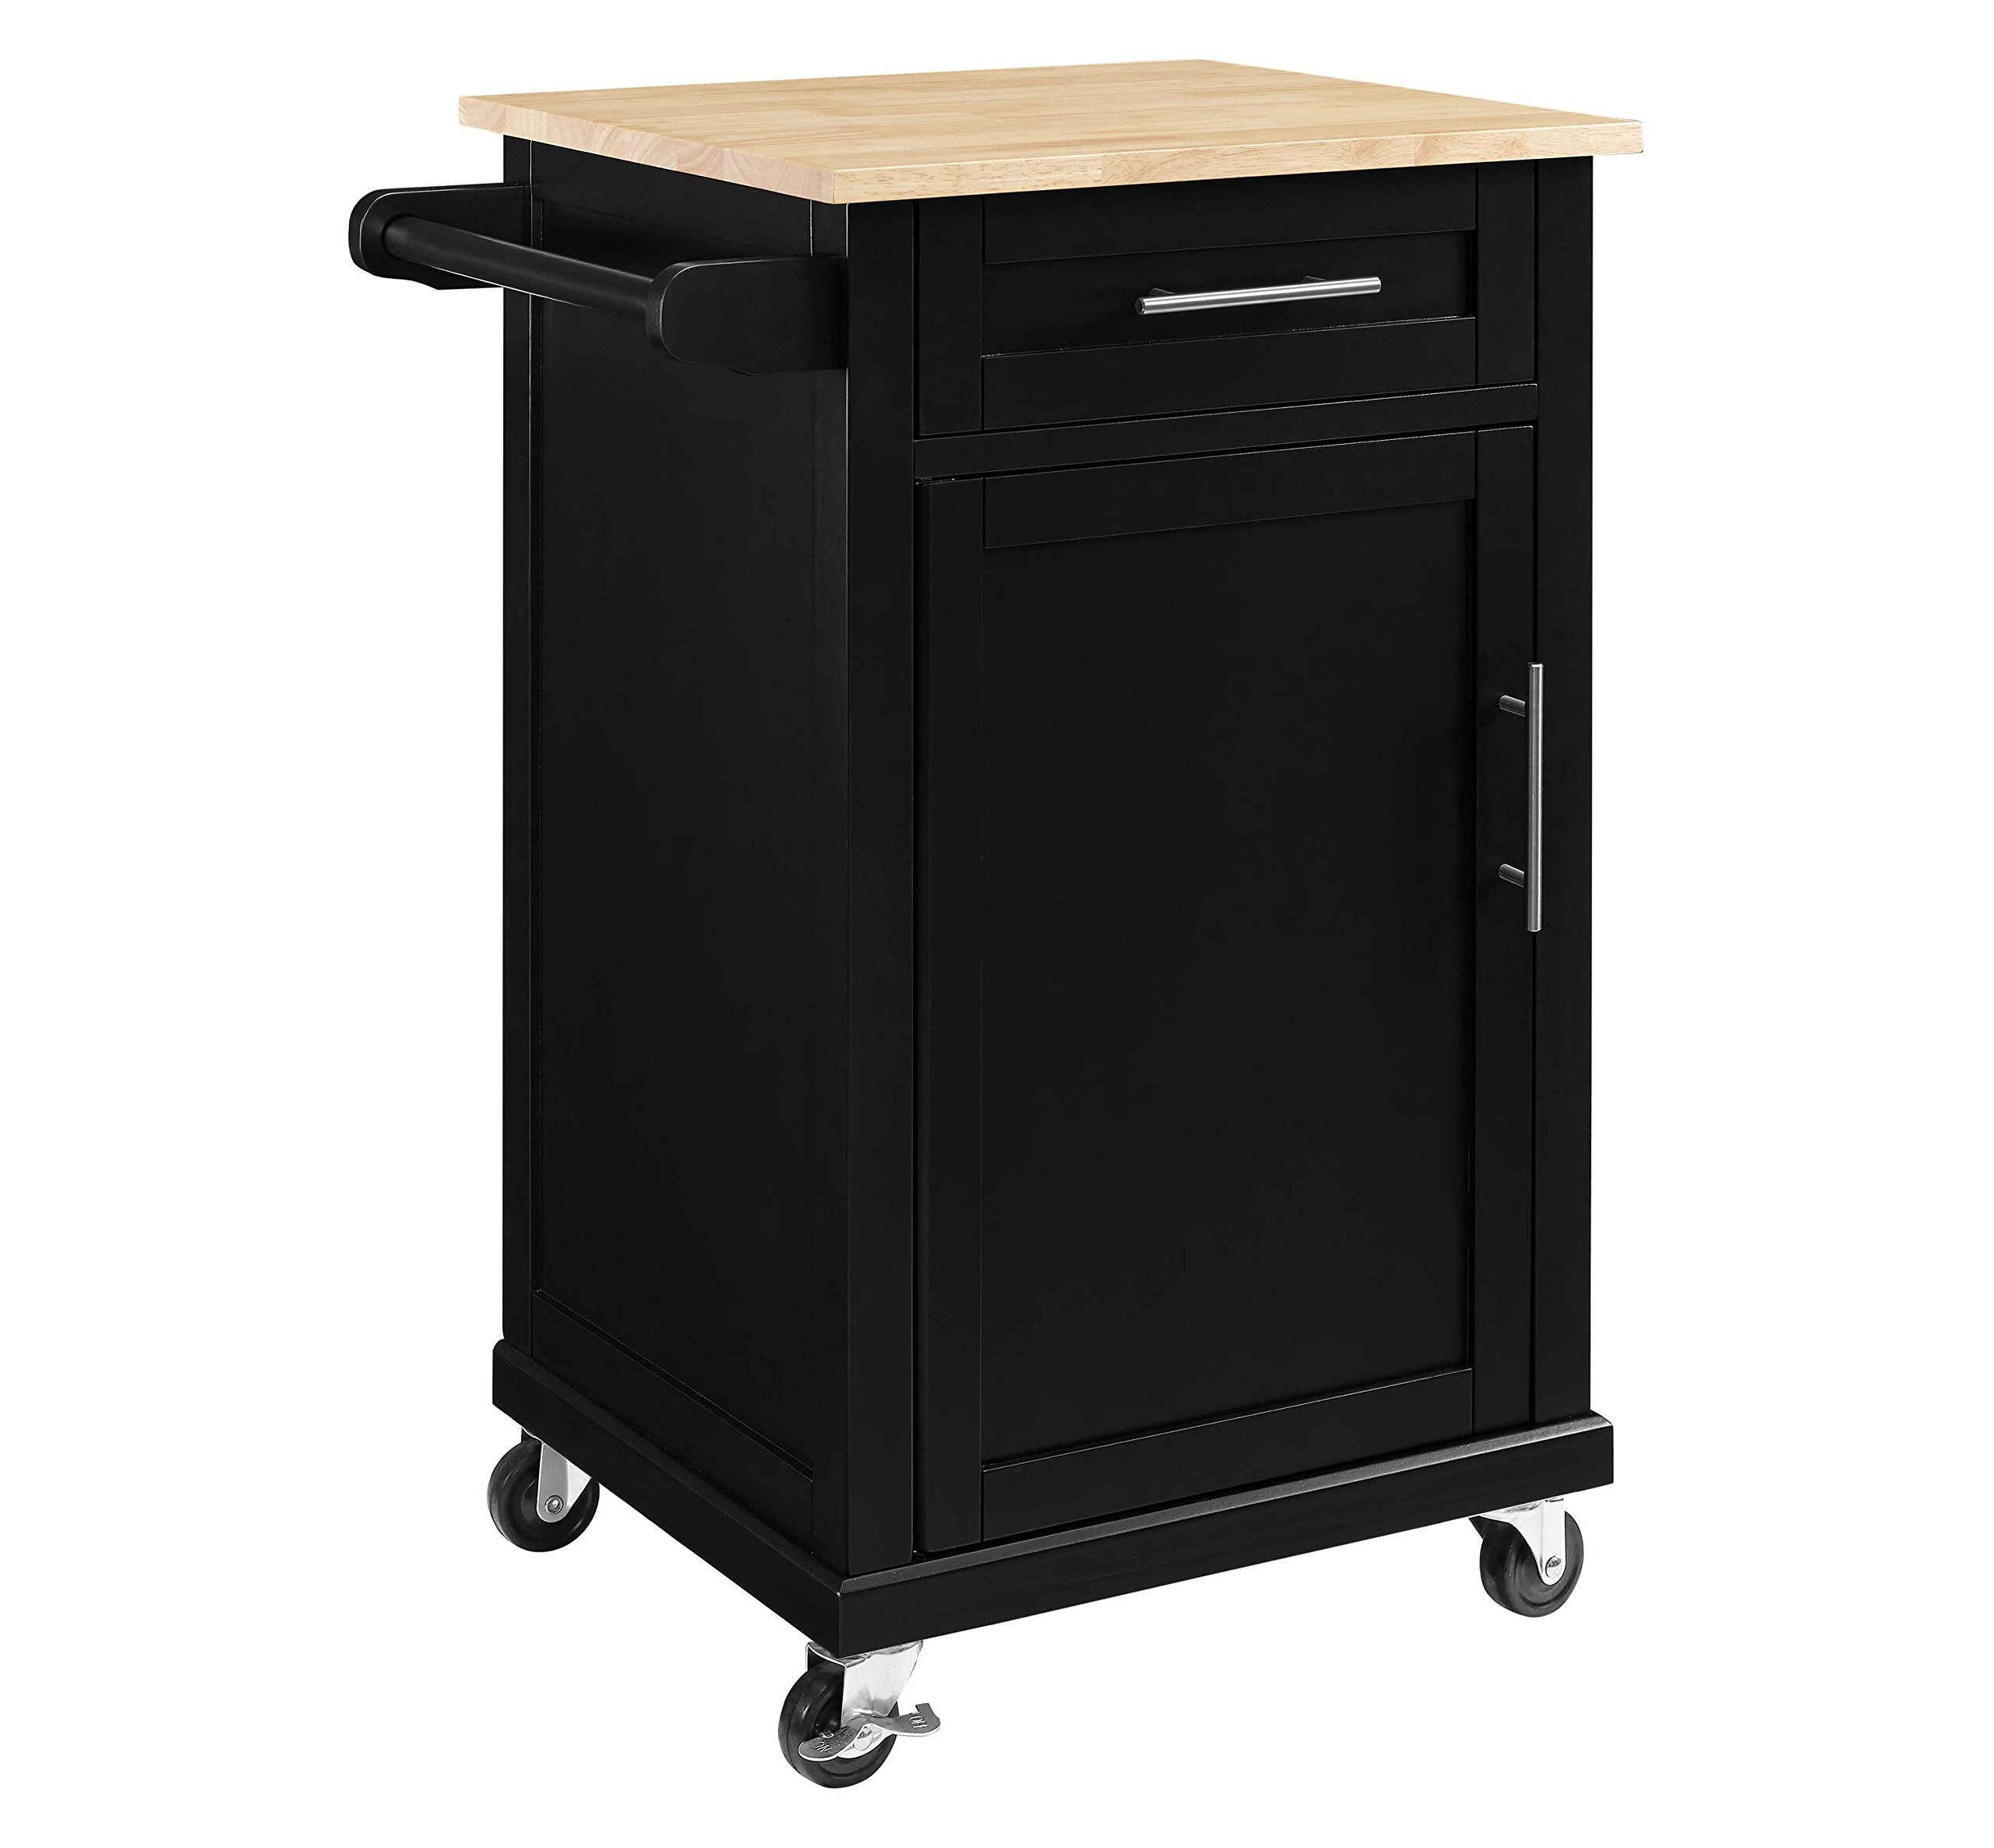 Threshold Carey Small Kitchen Cart (Black)